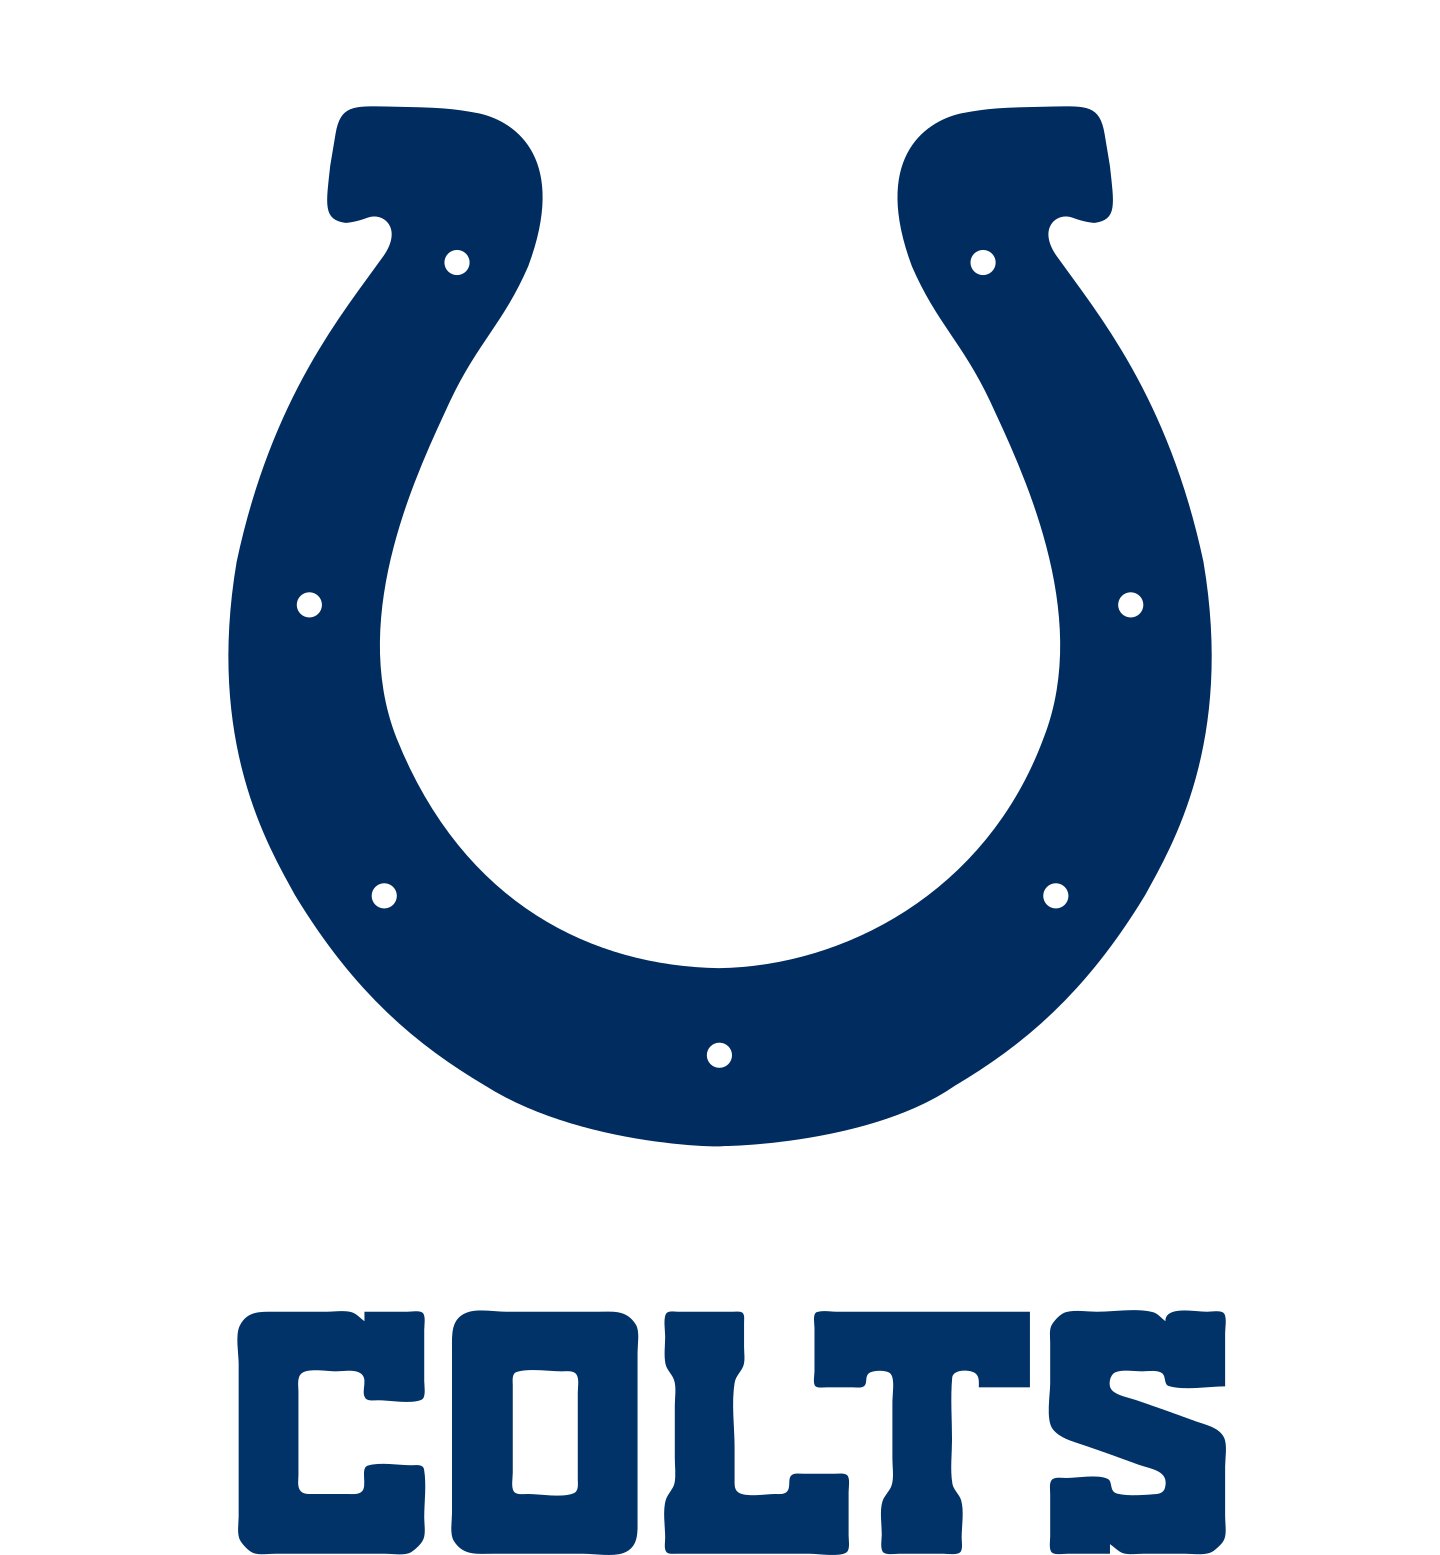 indianapolis colts logo 3 - Indianapolis Colts Logo